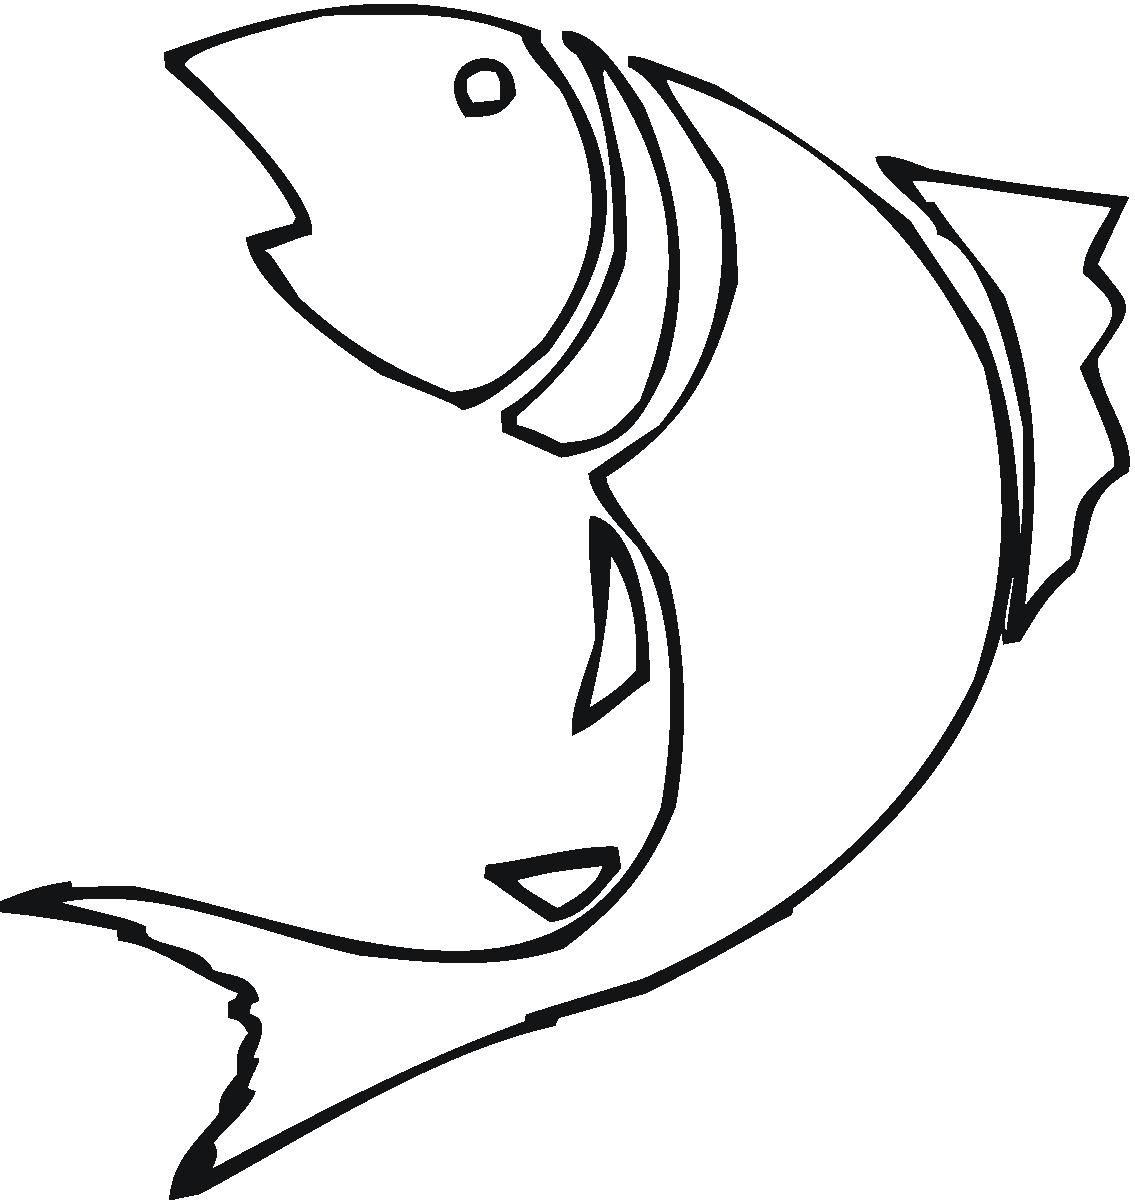 Fish outline coloring. Drawing clipart best cnc